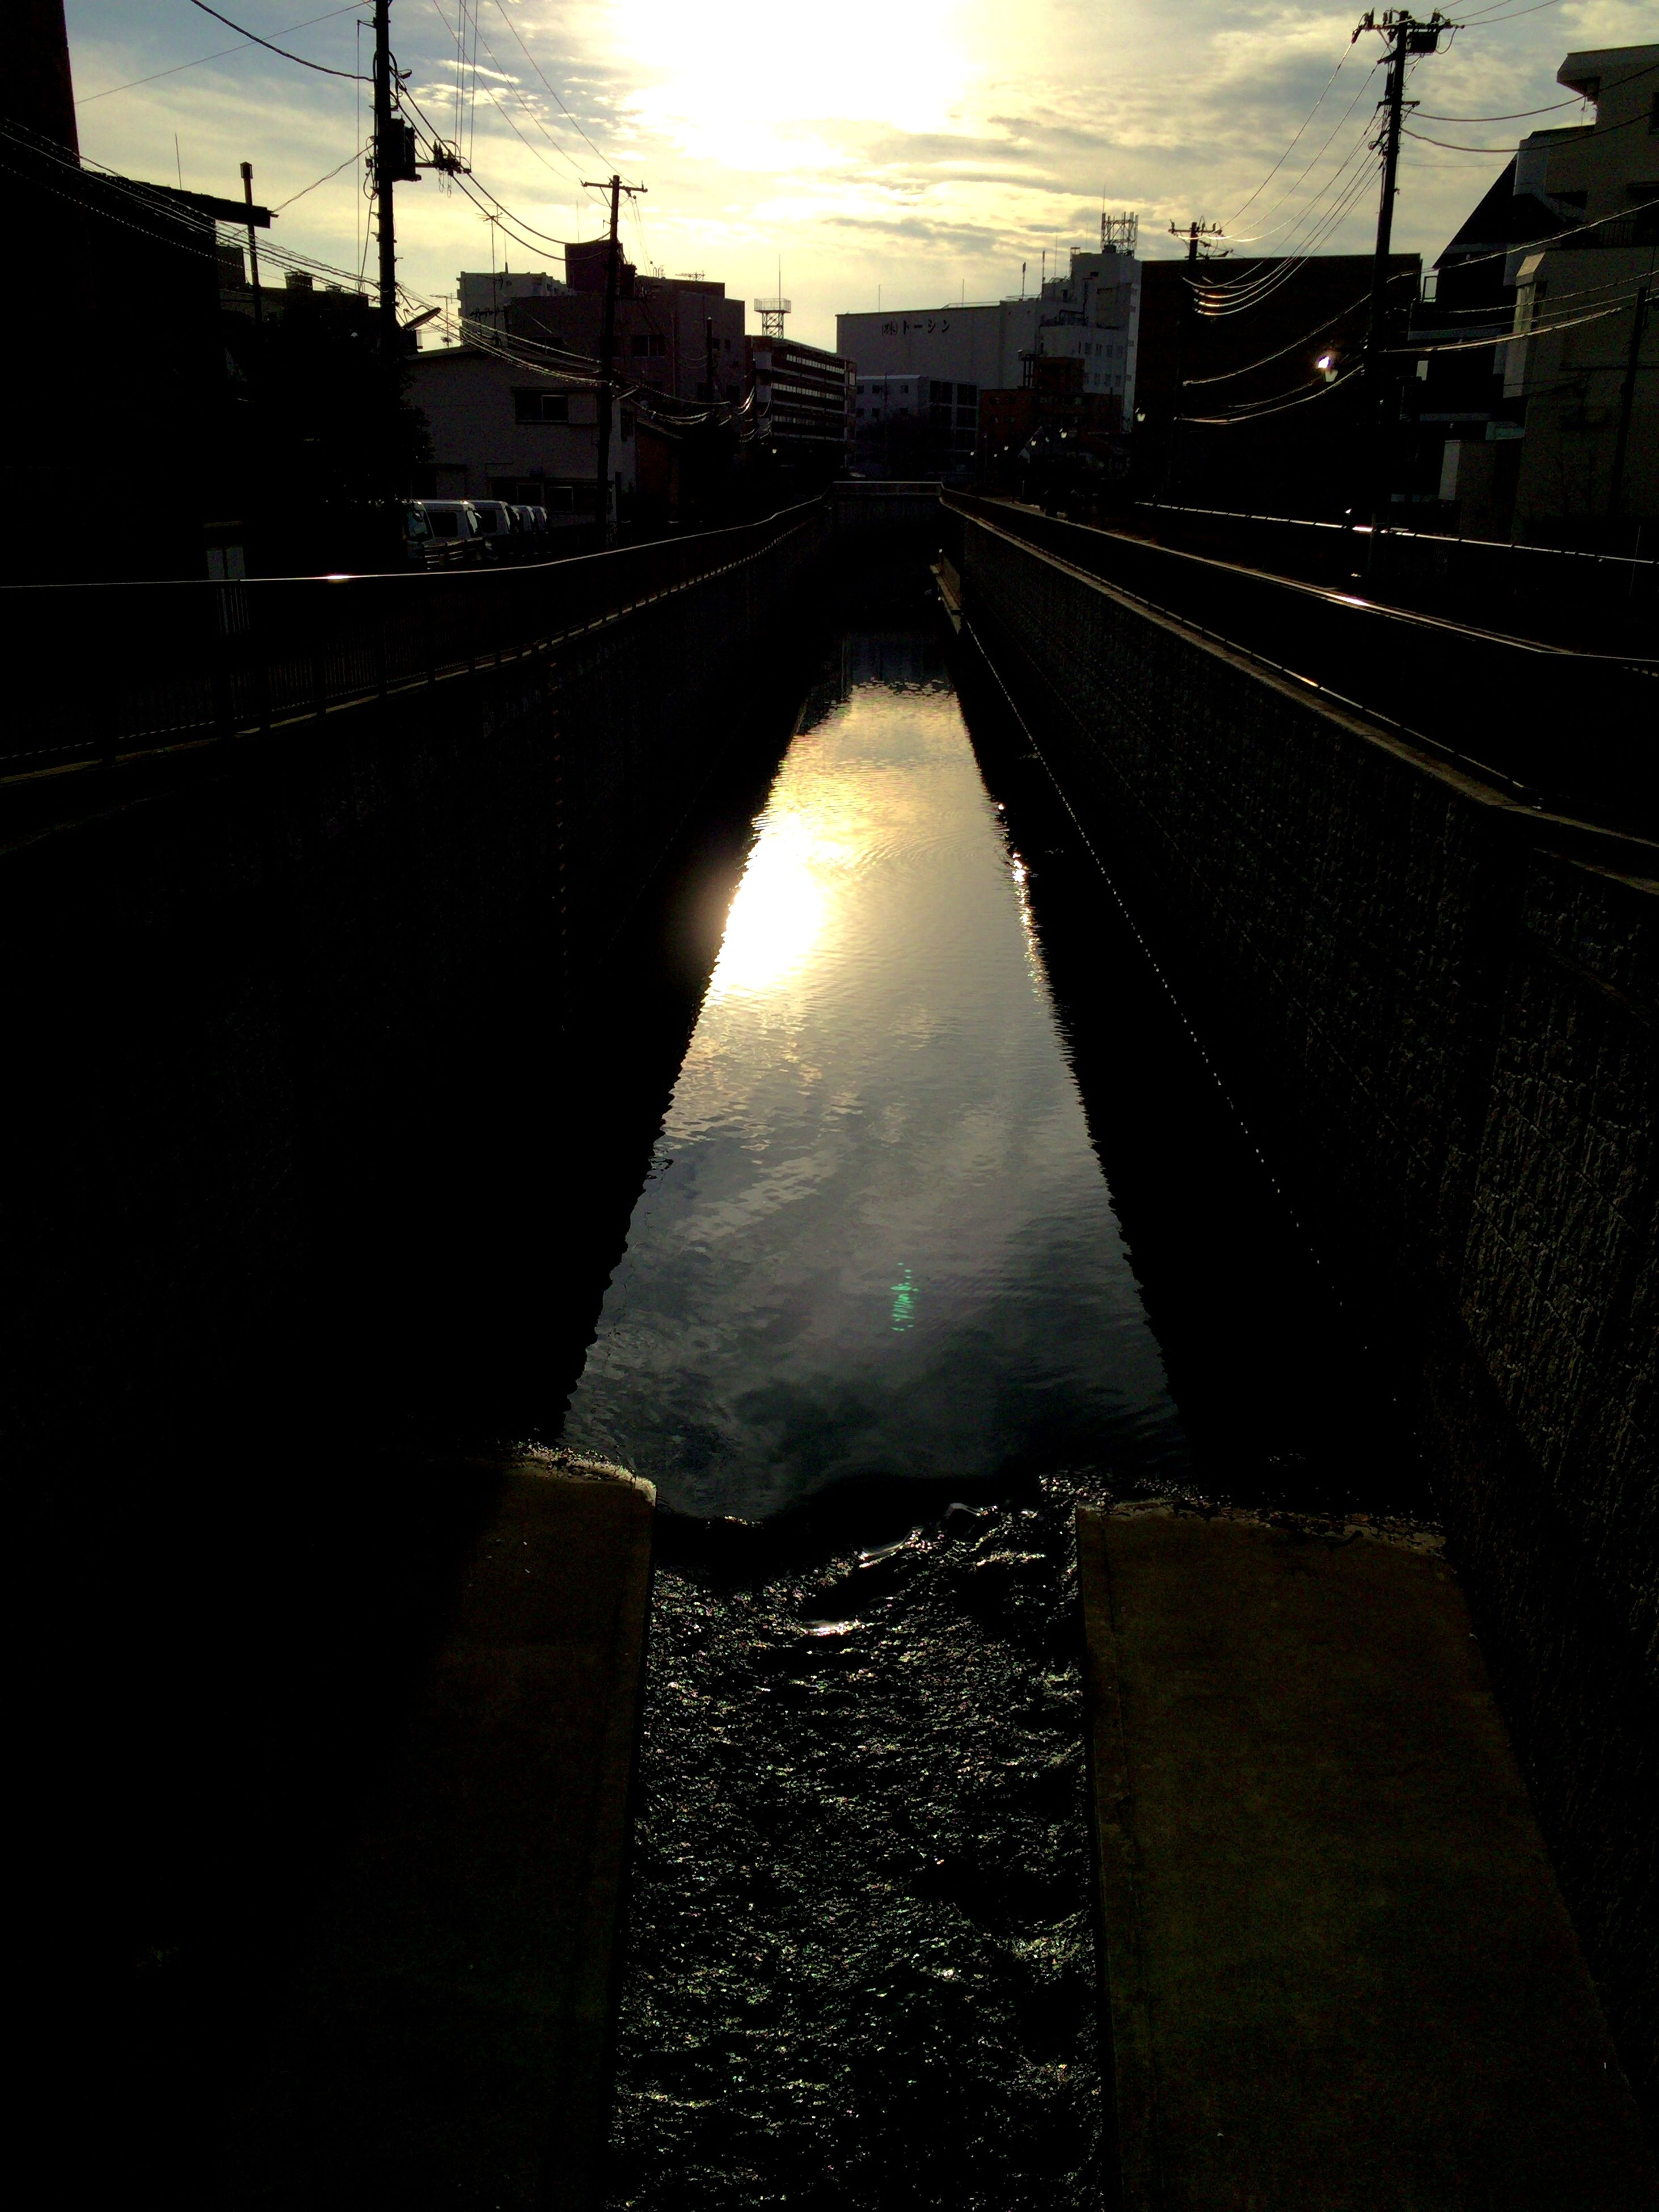 architecture, built structure, water, connection, building exterior, city, sky, sunset, transportation, river, bridge - man made structure, reflection, diminishing perspective, cloud - sky, railroad track, wet, dusk, the way forward, vanishing point, power line